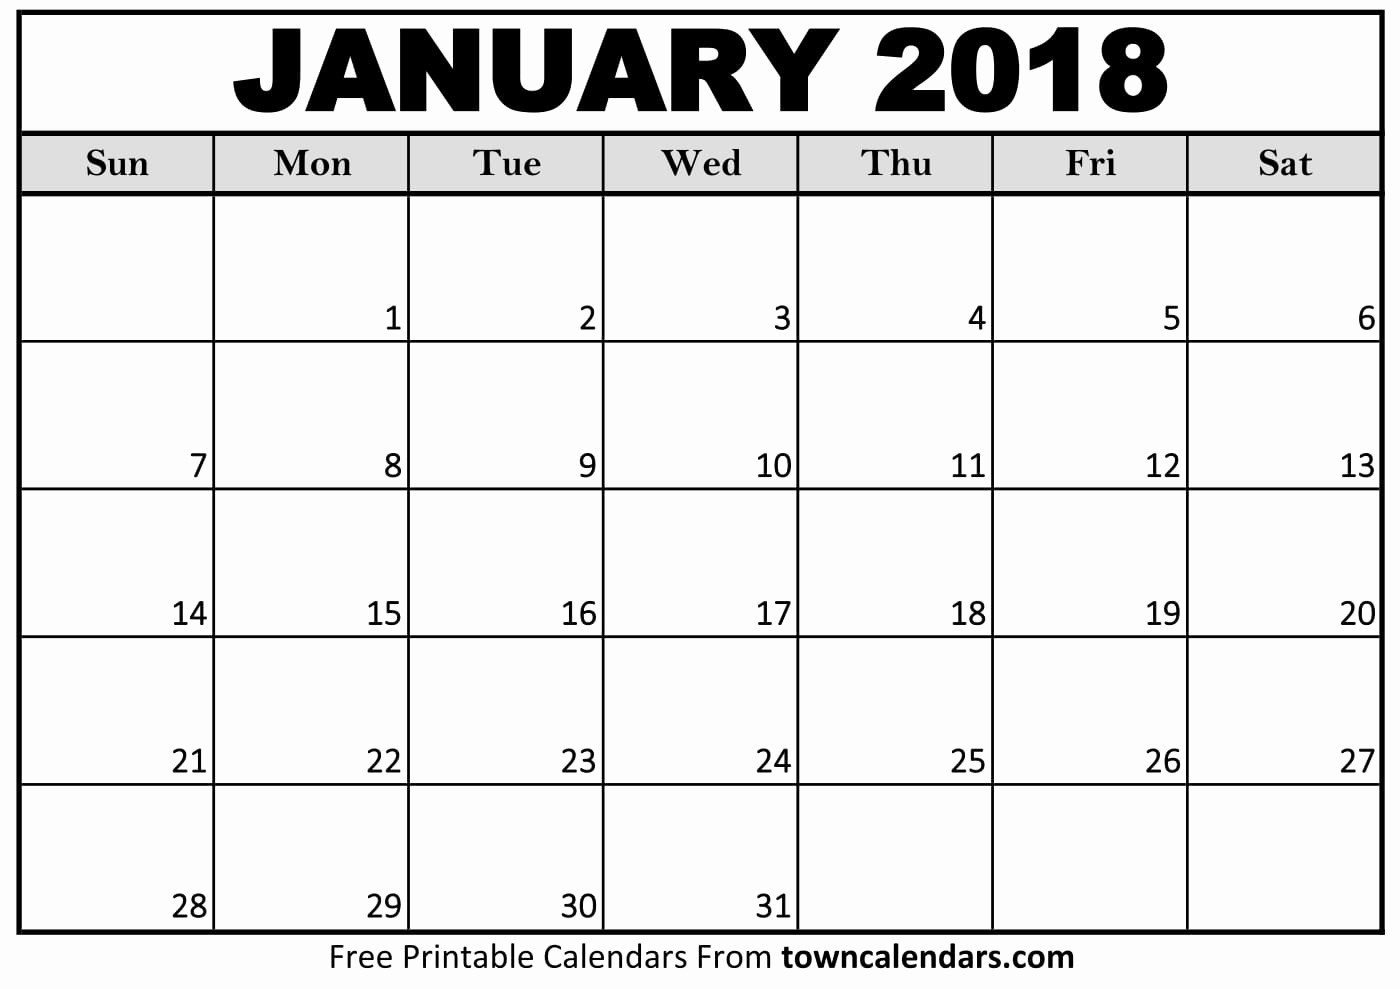 Free Printable 2018 Calendar Templates Unique Printable January 2018 Calendar towncalendars